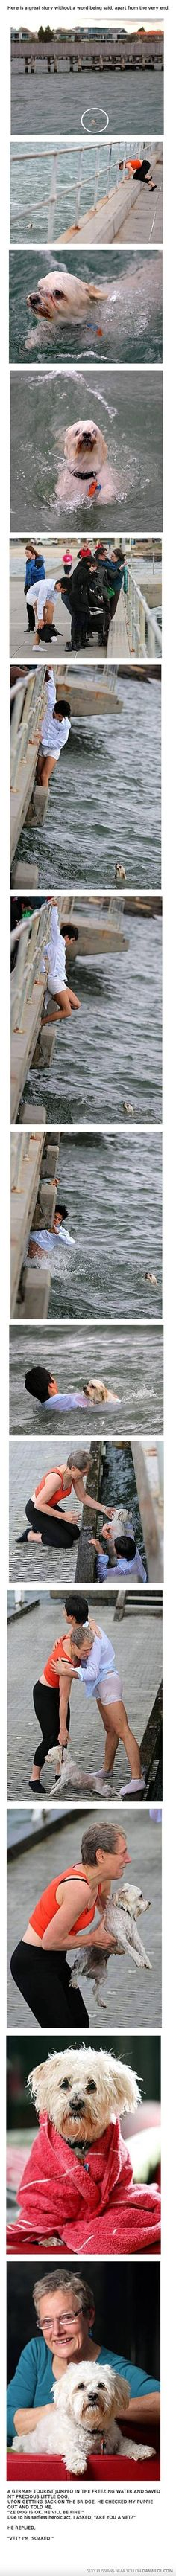 Saving a dog... the story at the end cracks me up.